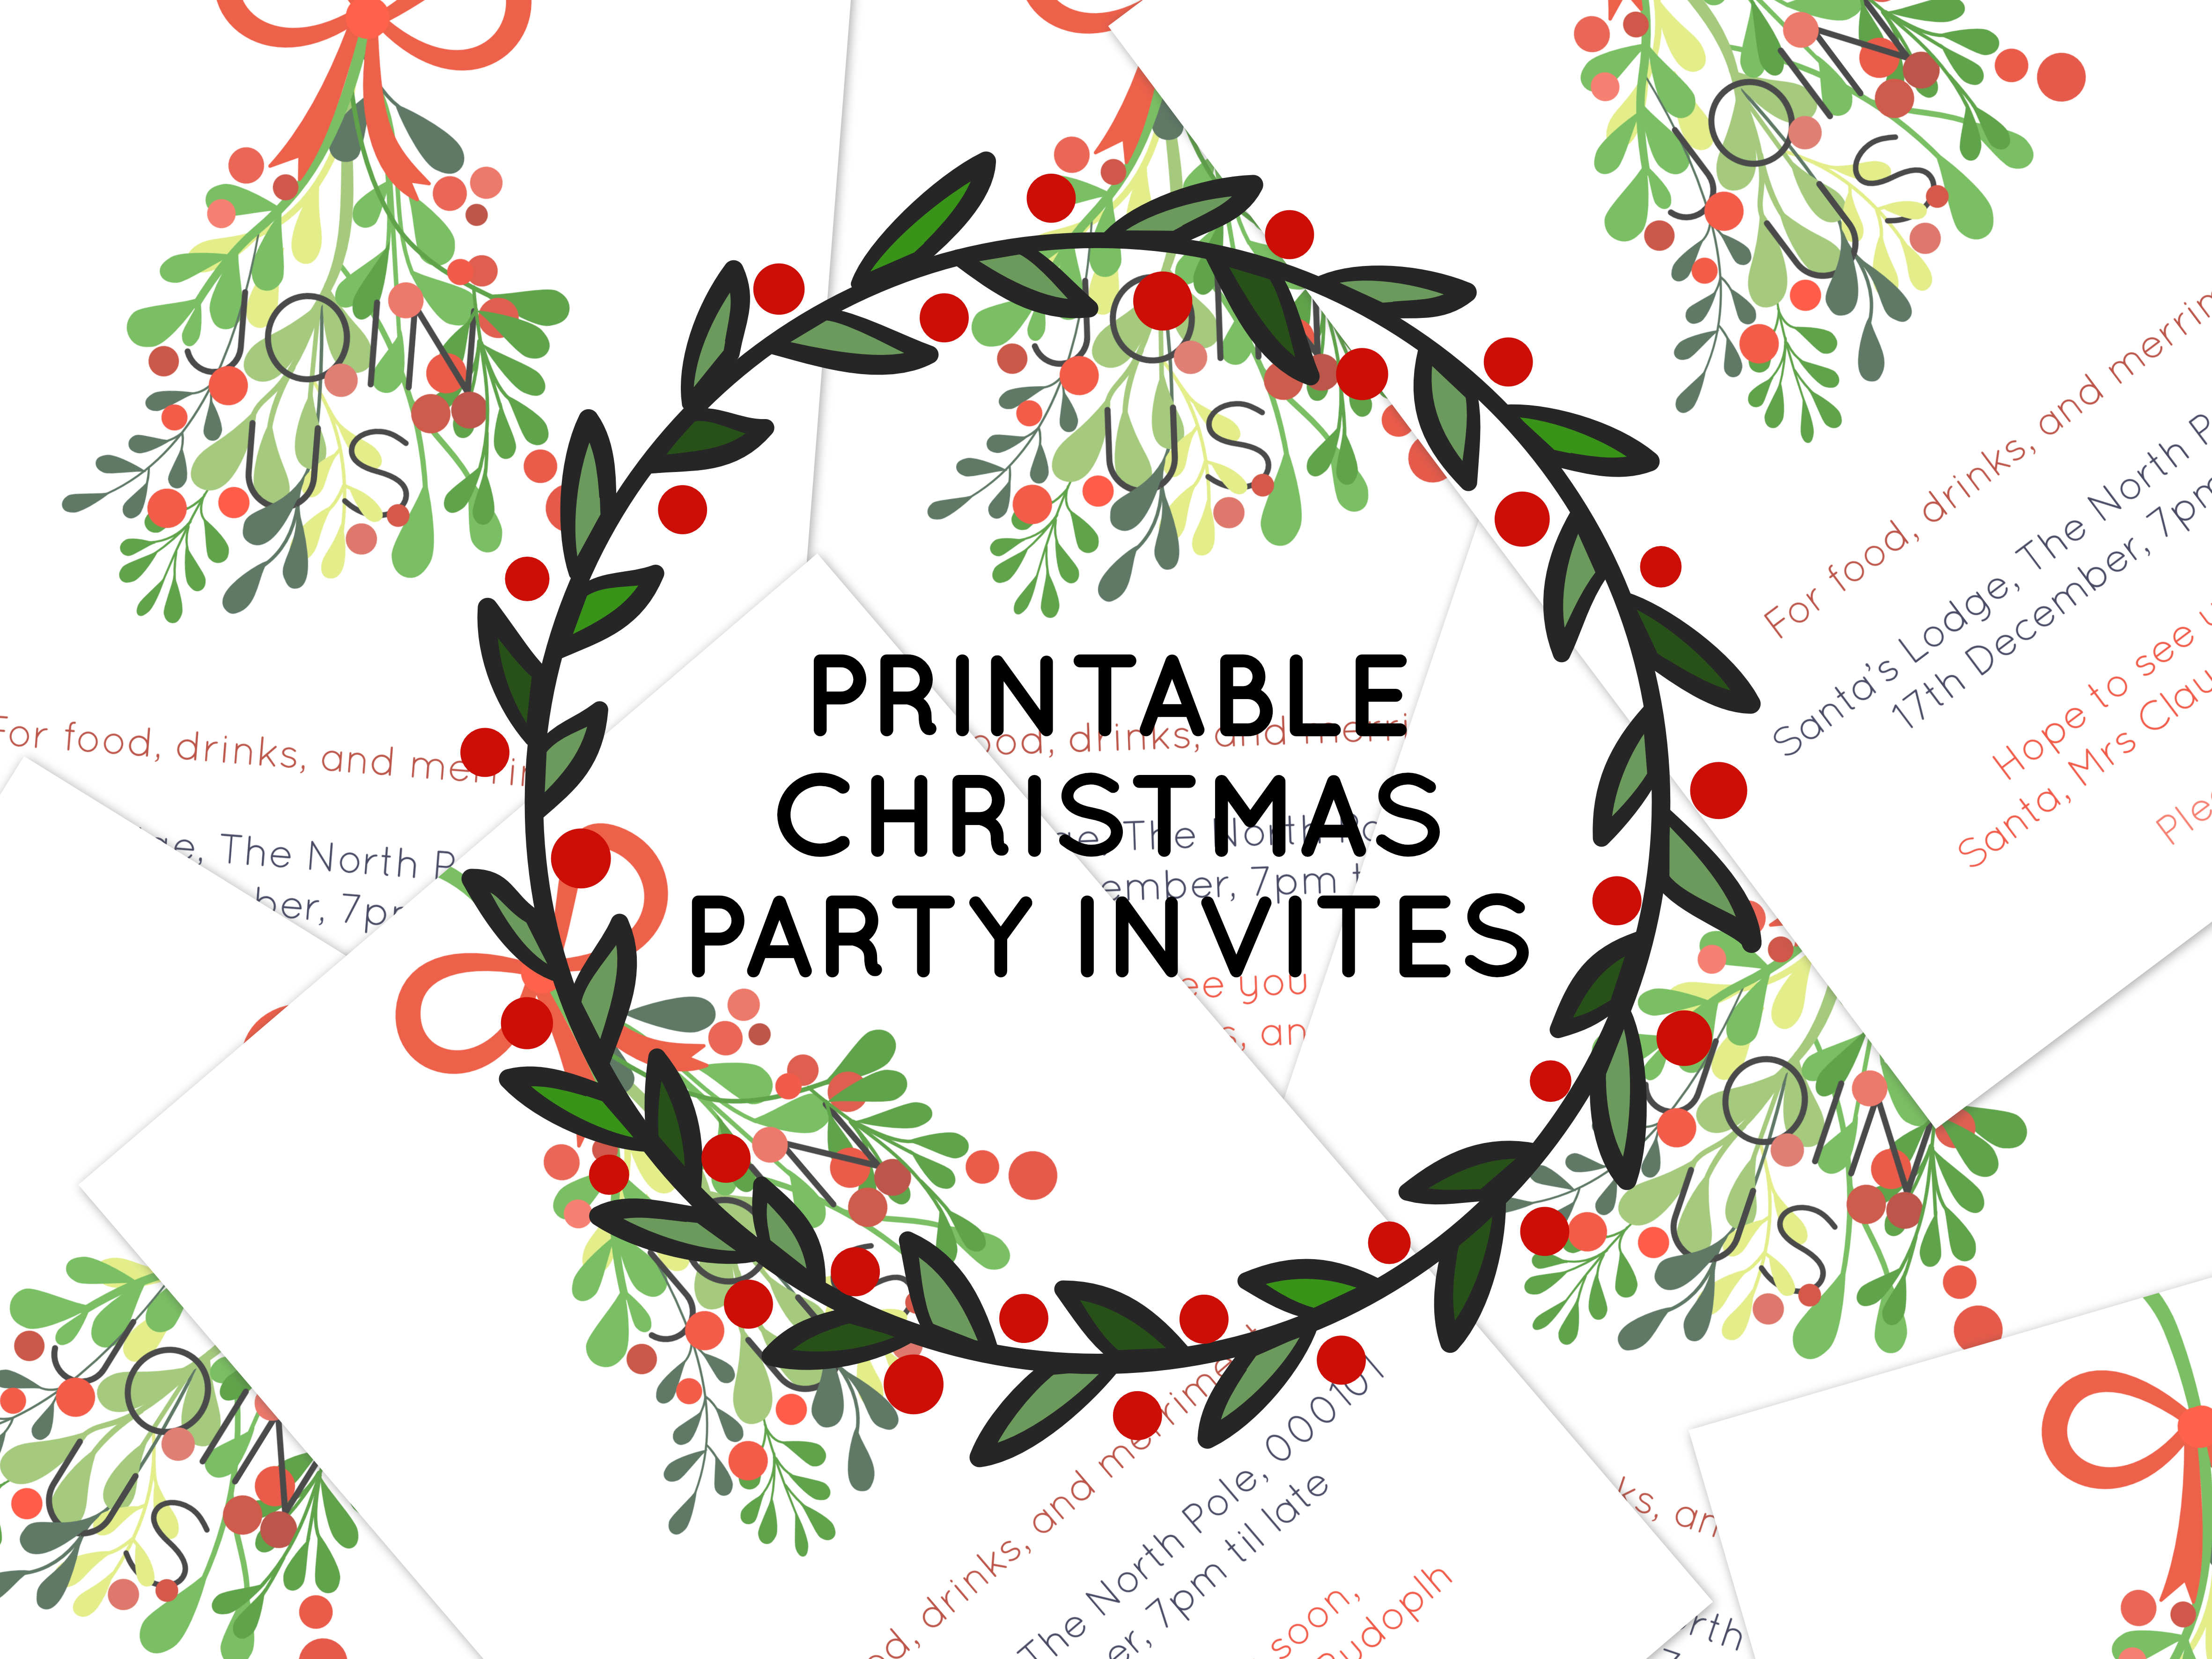 Clean image with free printable holiday invitations